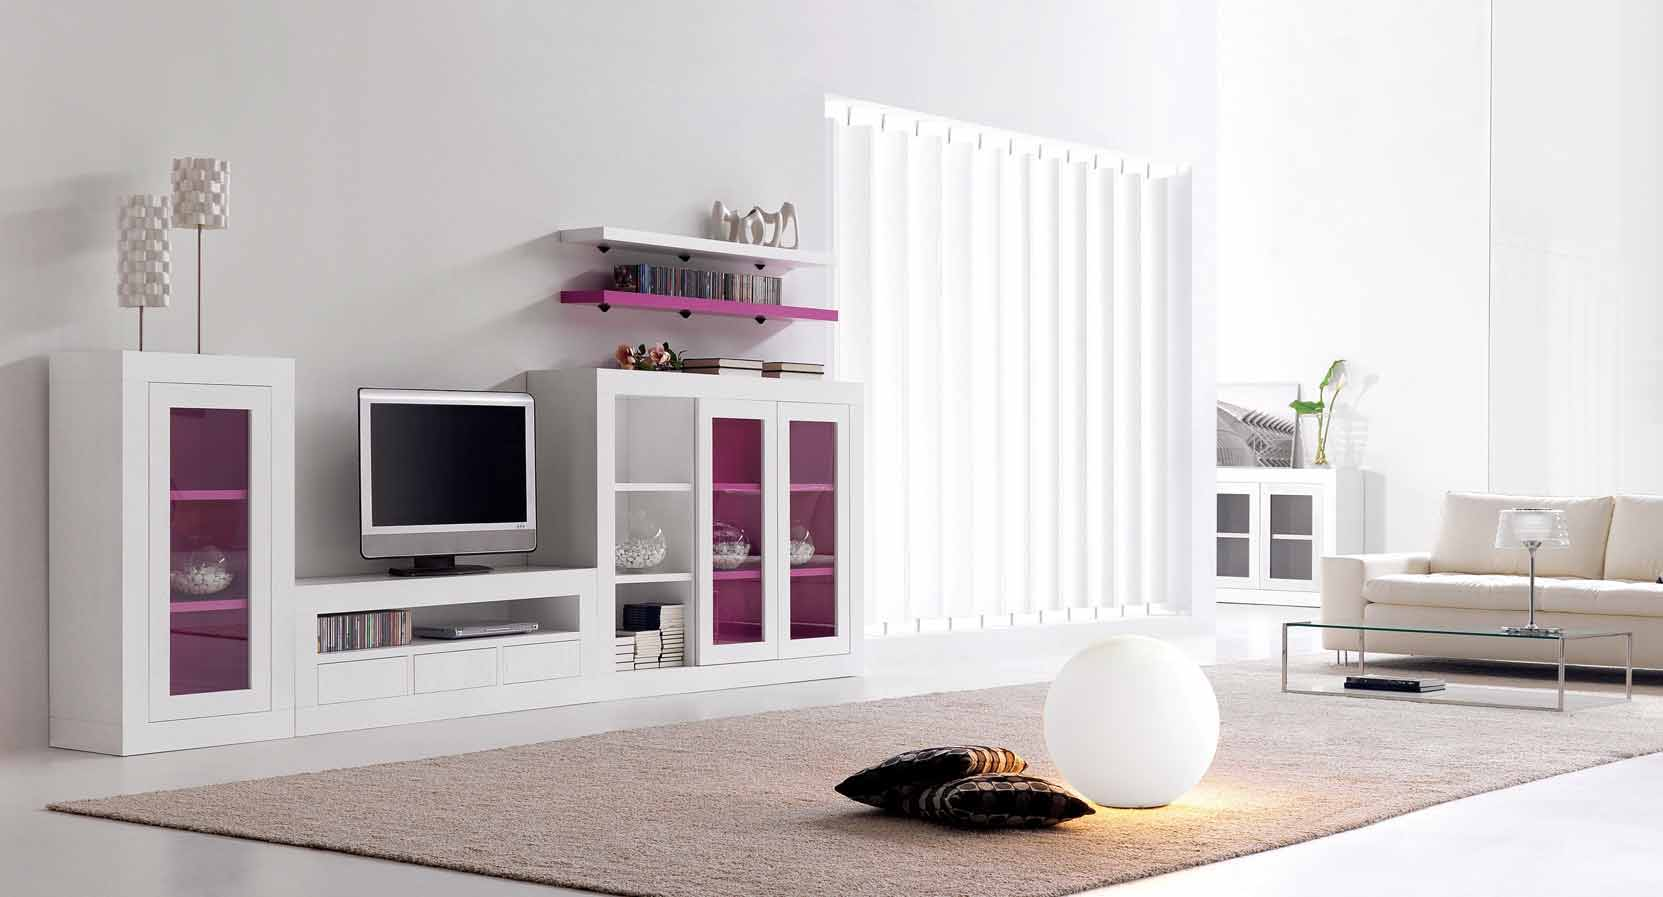 C mo decorar el sal n con ideas y detalle en fucsia for Ideas de muebles